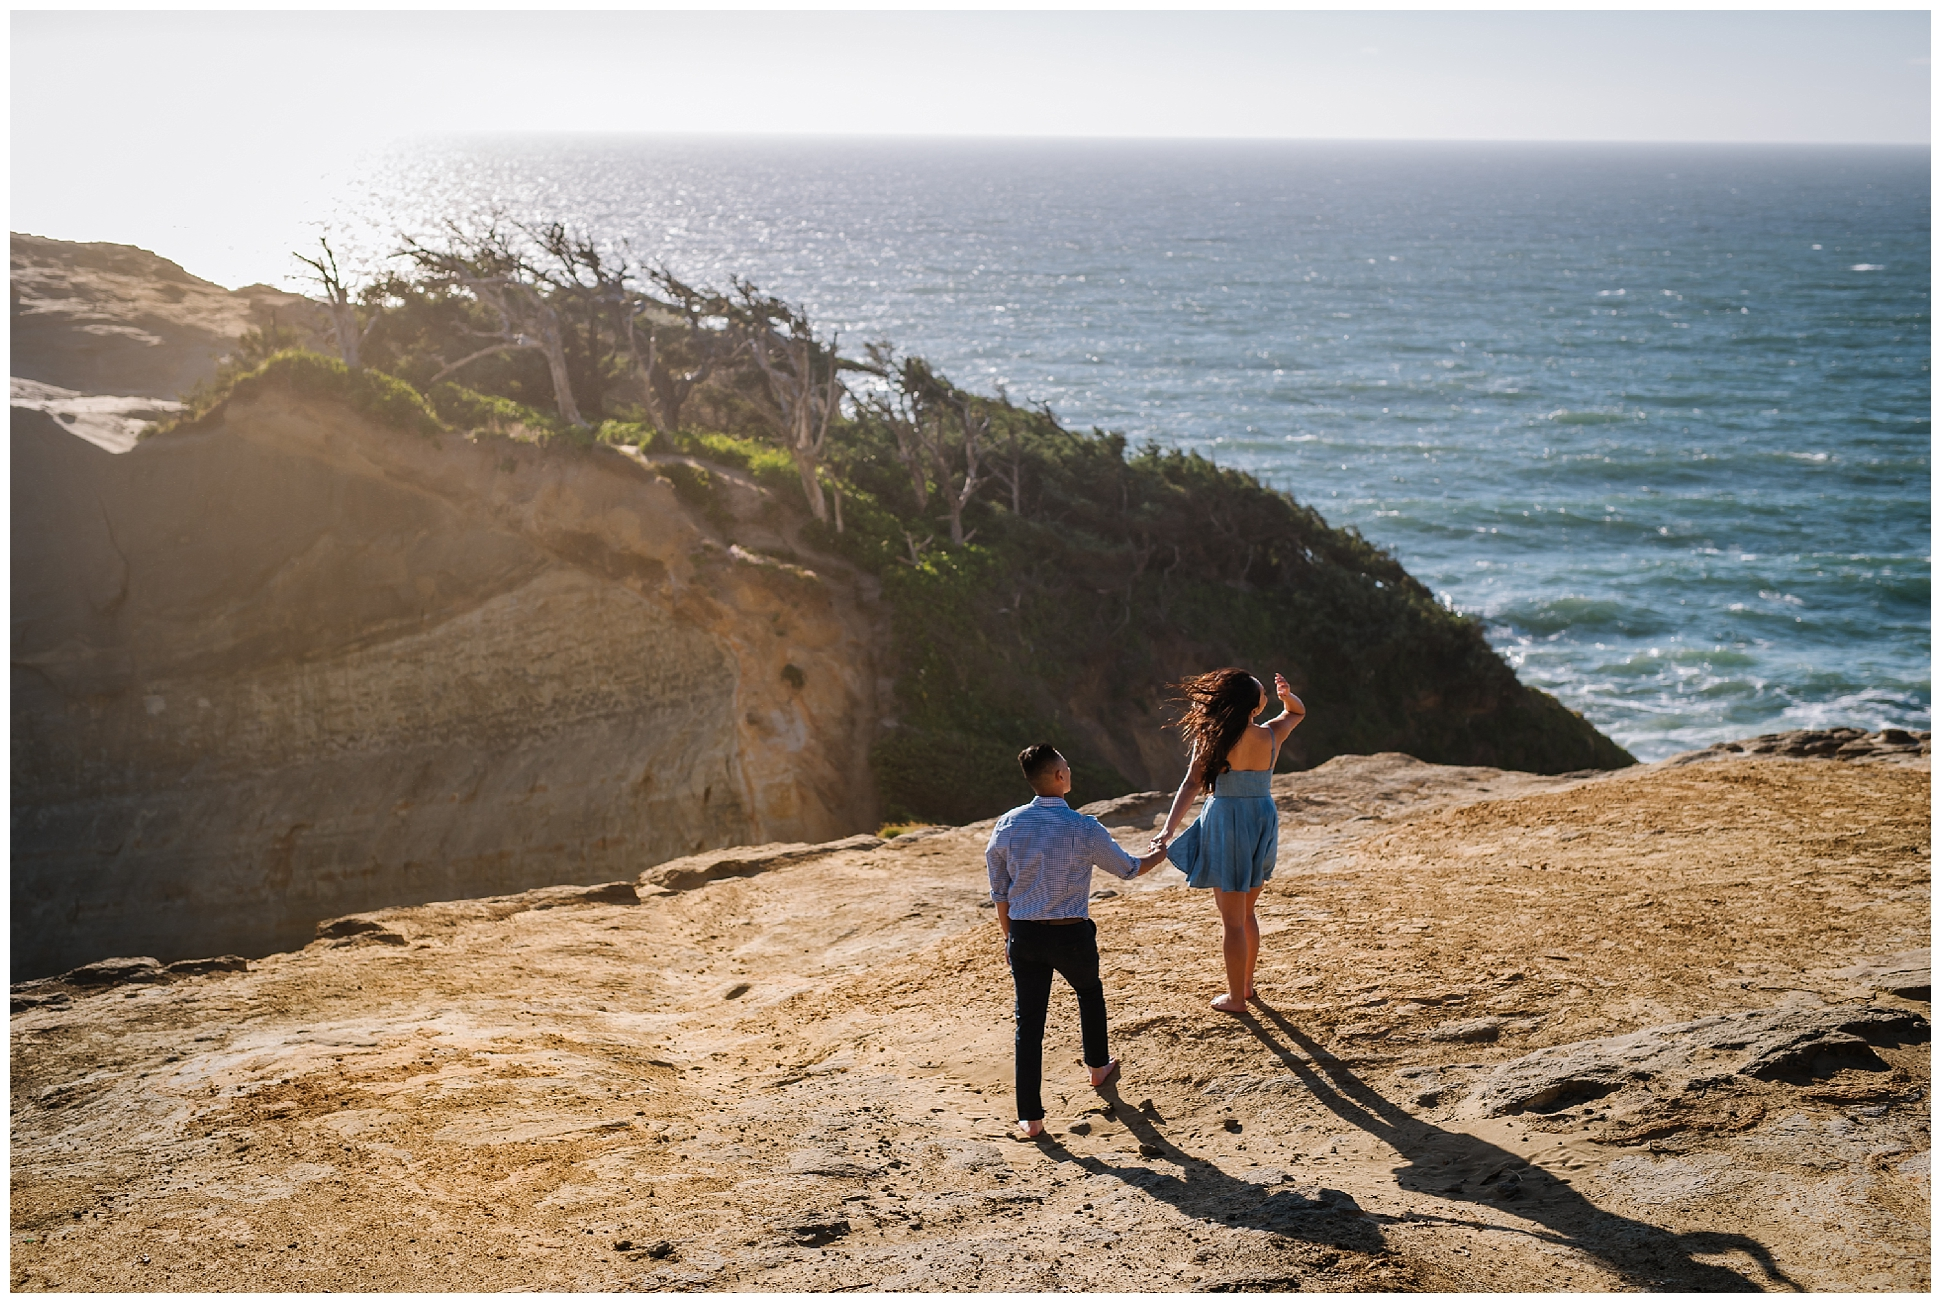 Cape-kiwanda-bridal-portrait-destination-wedding-photographer_0009.jpg